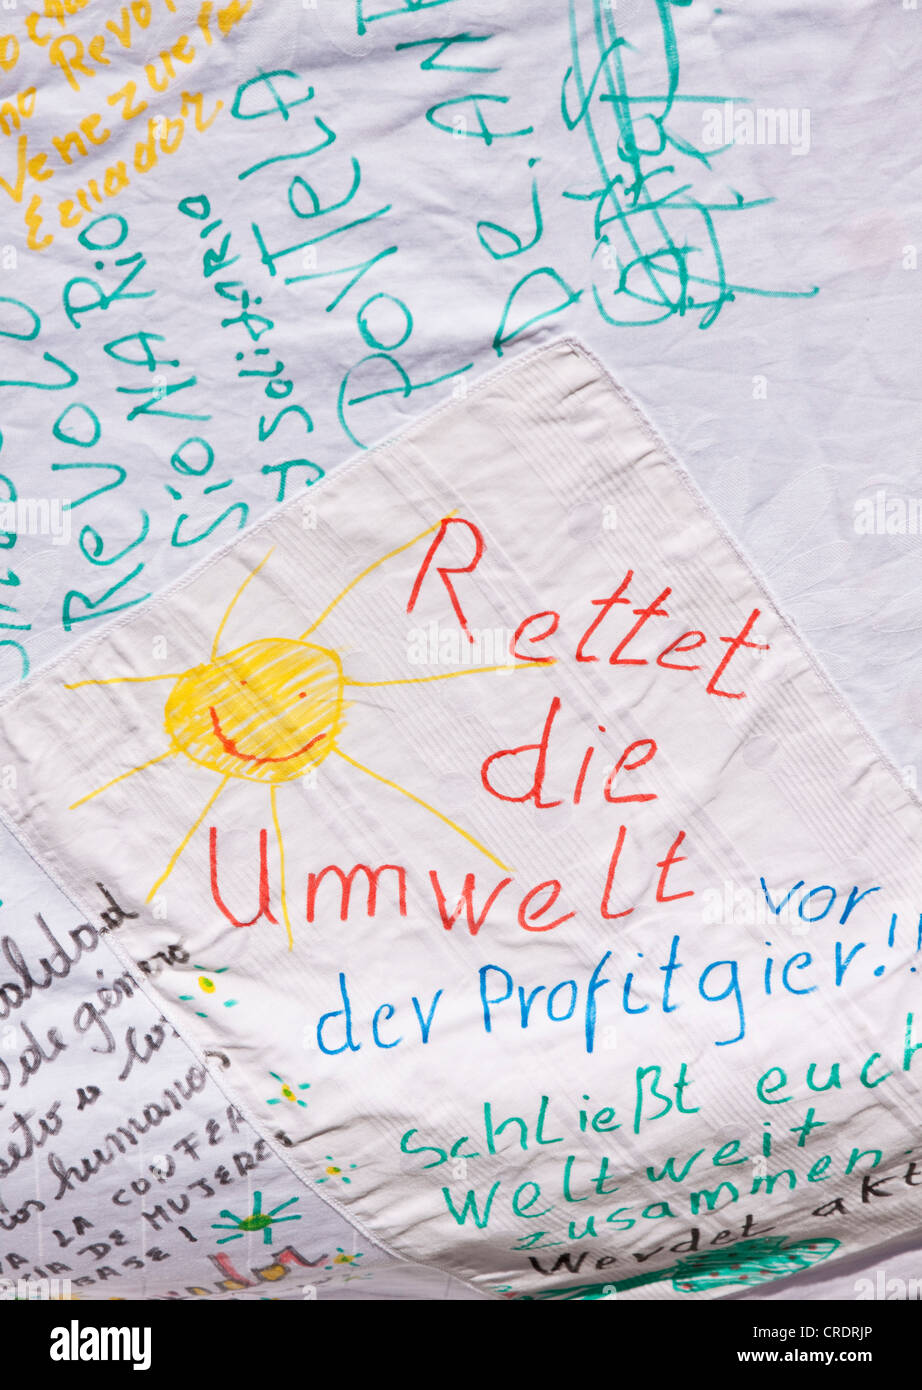 Rettet die Umwelt or Save the Environment, written on and painted on sheet, environmental conservation - Stock Image